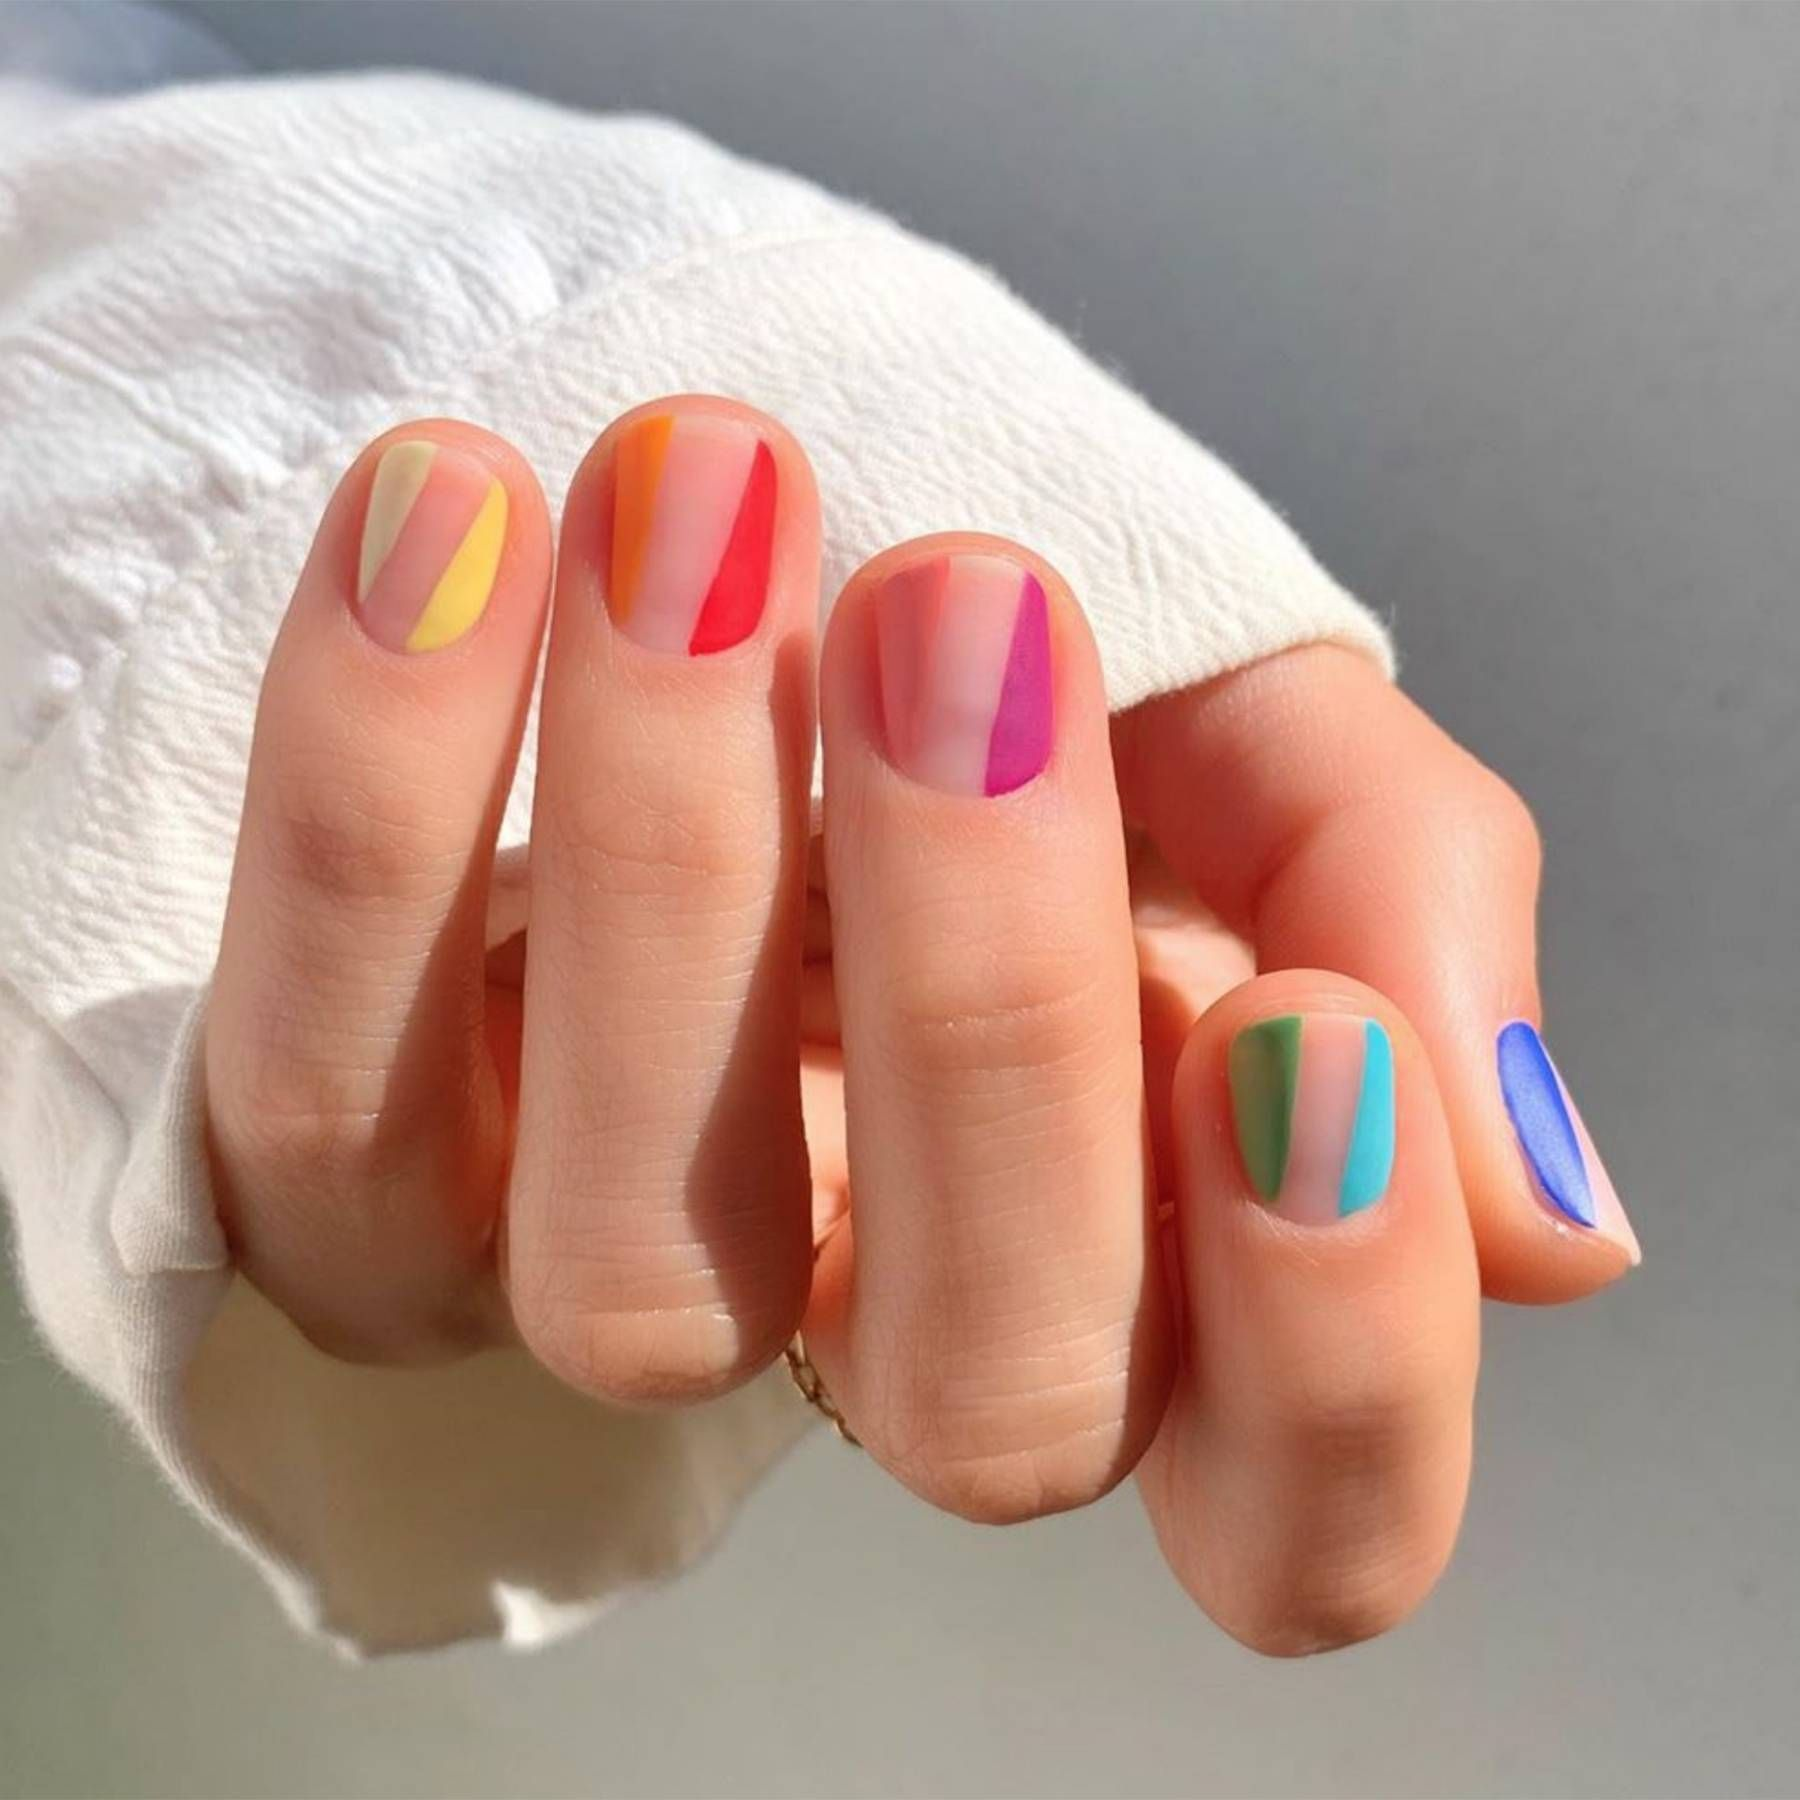 The pastel French manicure is the nail art trend everyones trying in isolation